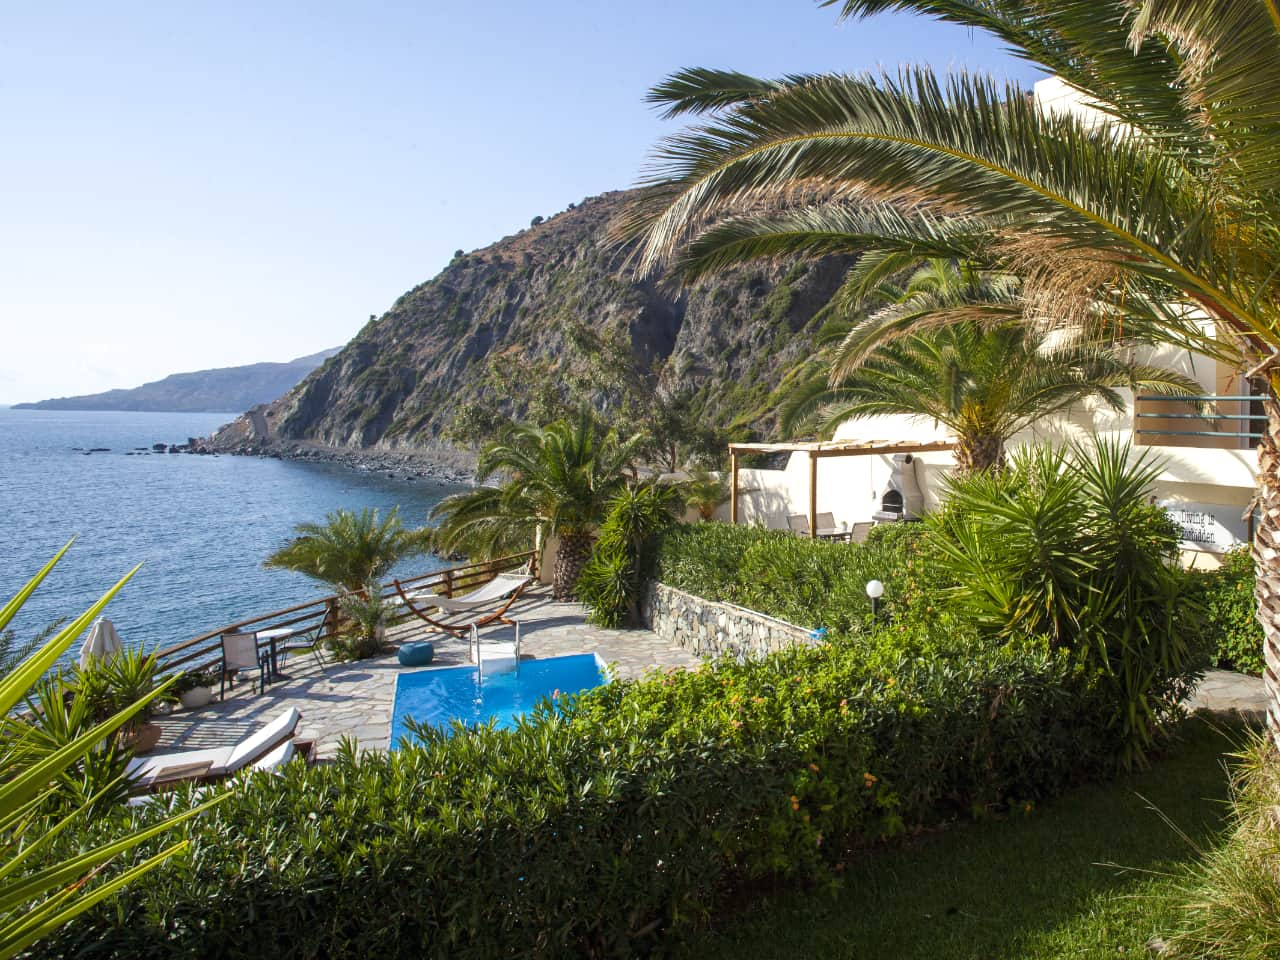 East of Preveli Villas - South Rethimno Sensational Sea Views, Harmony with Nature, Tranquility